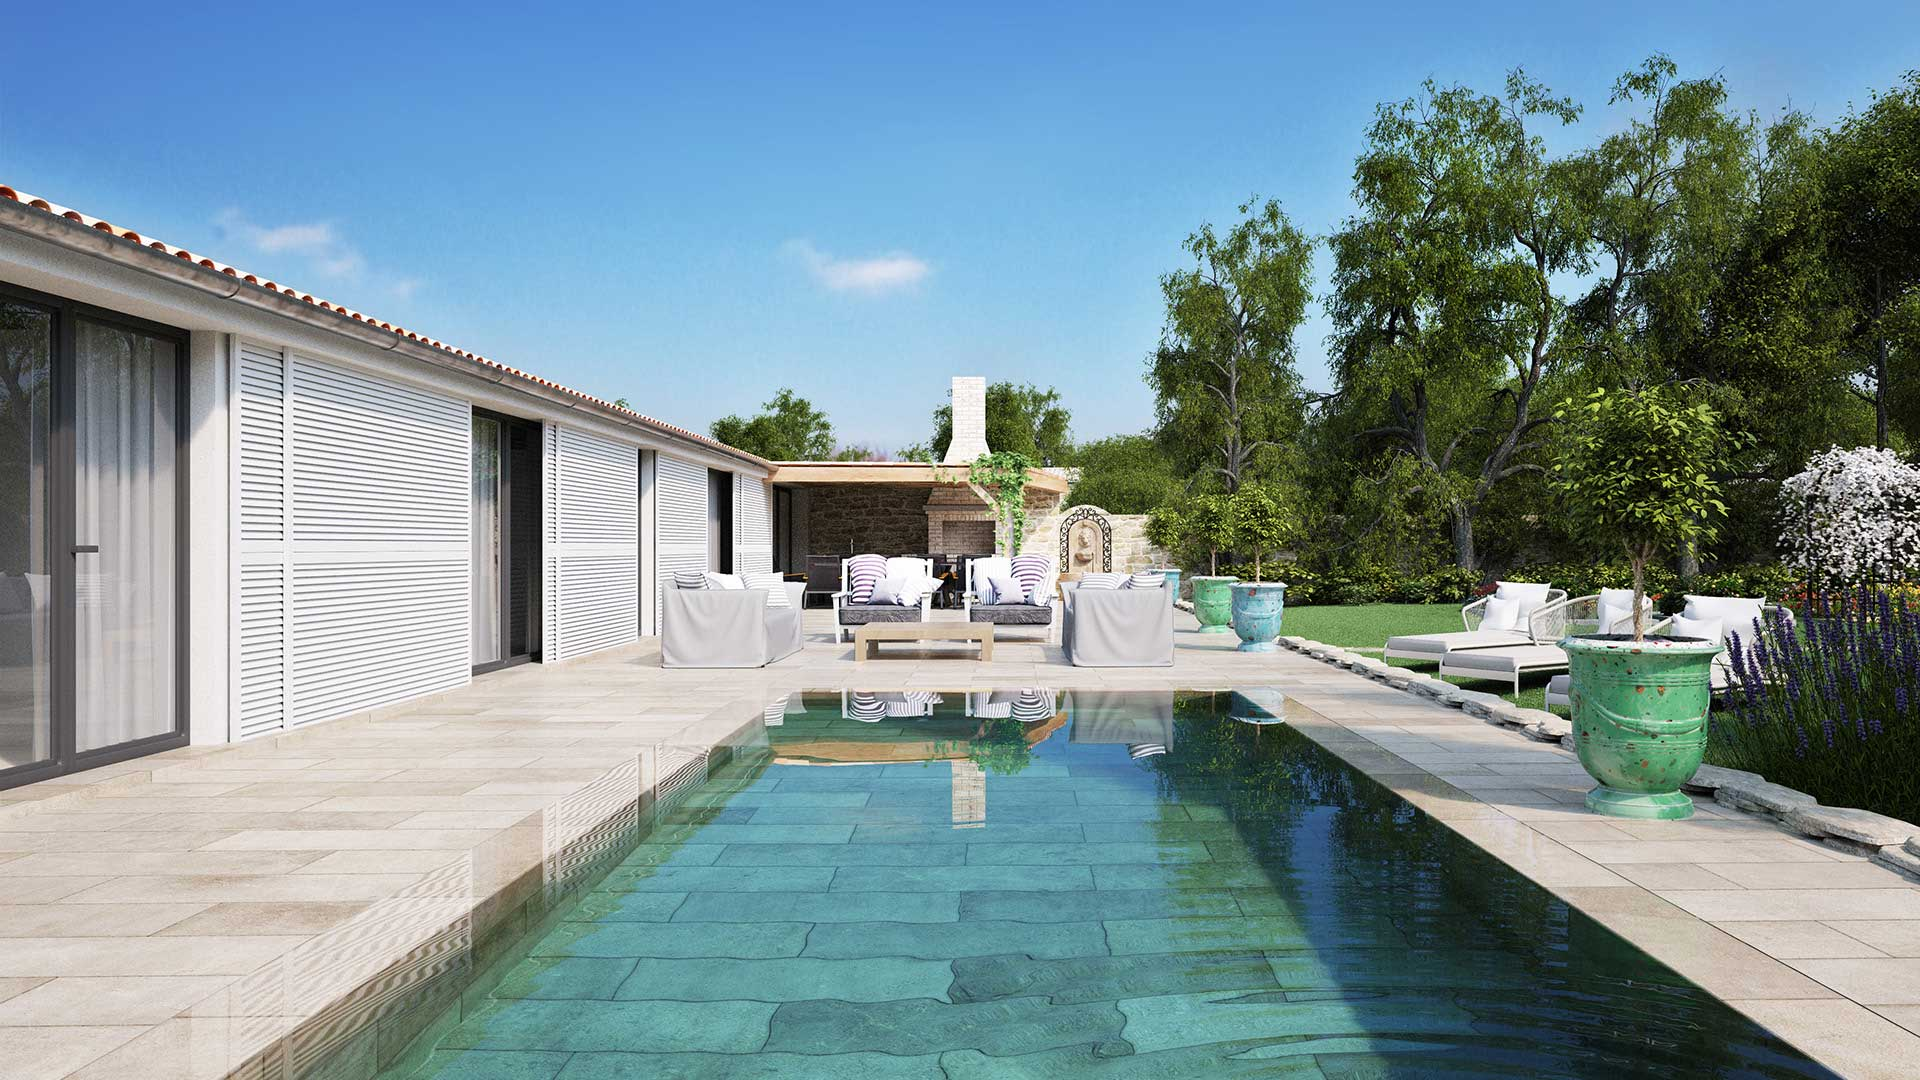 3D Perspective view of a luxurious pool in Île-de-Ré.